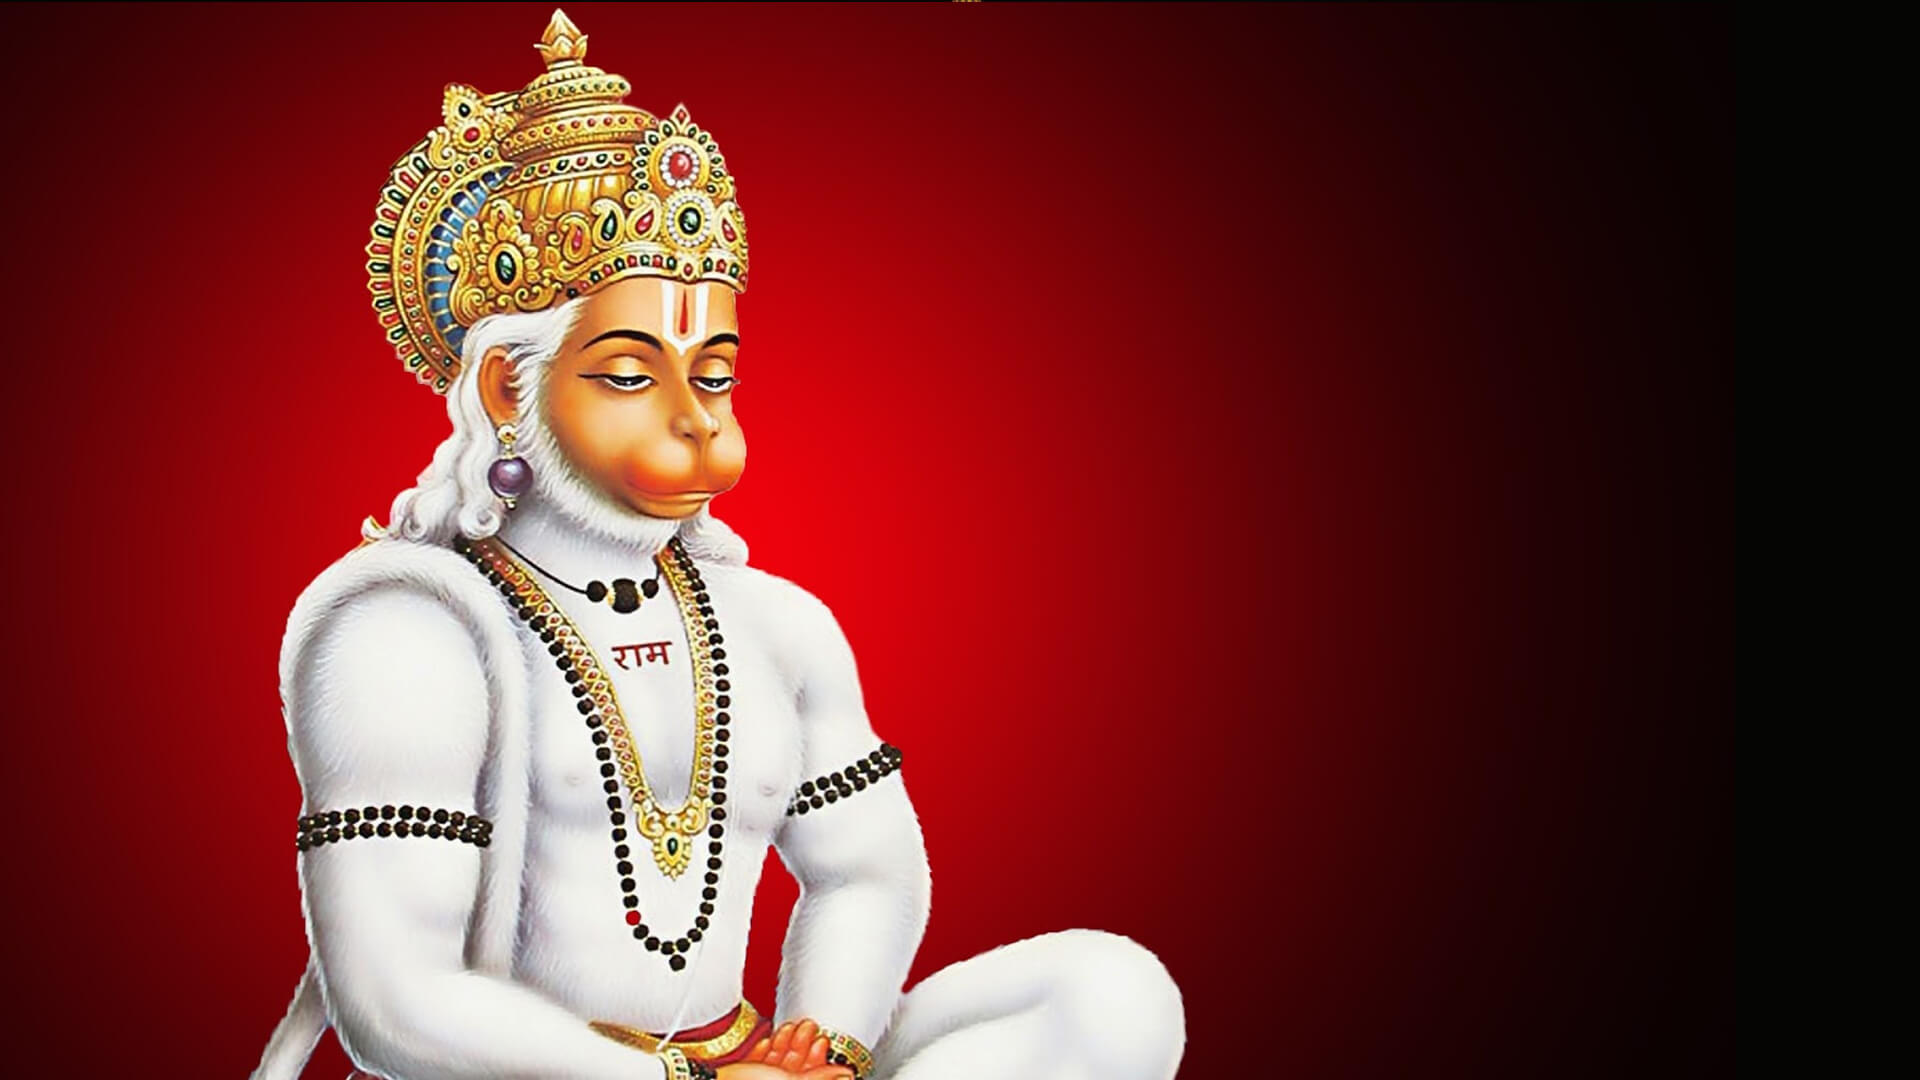 Top 50 Best Hd Hanuman Images Wallpapers Trending In 2018 Page 2